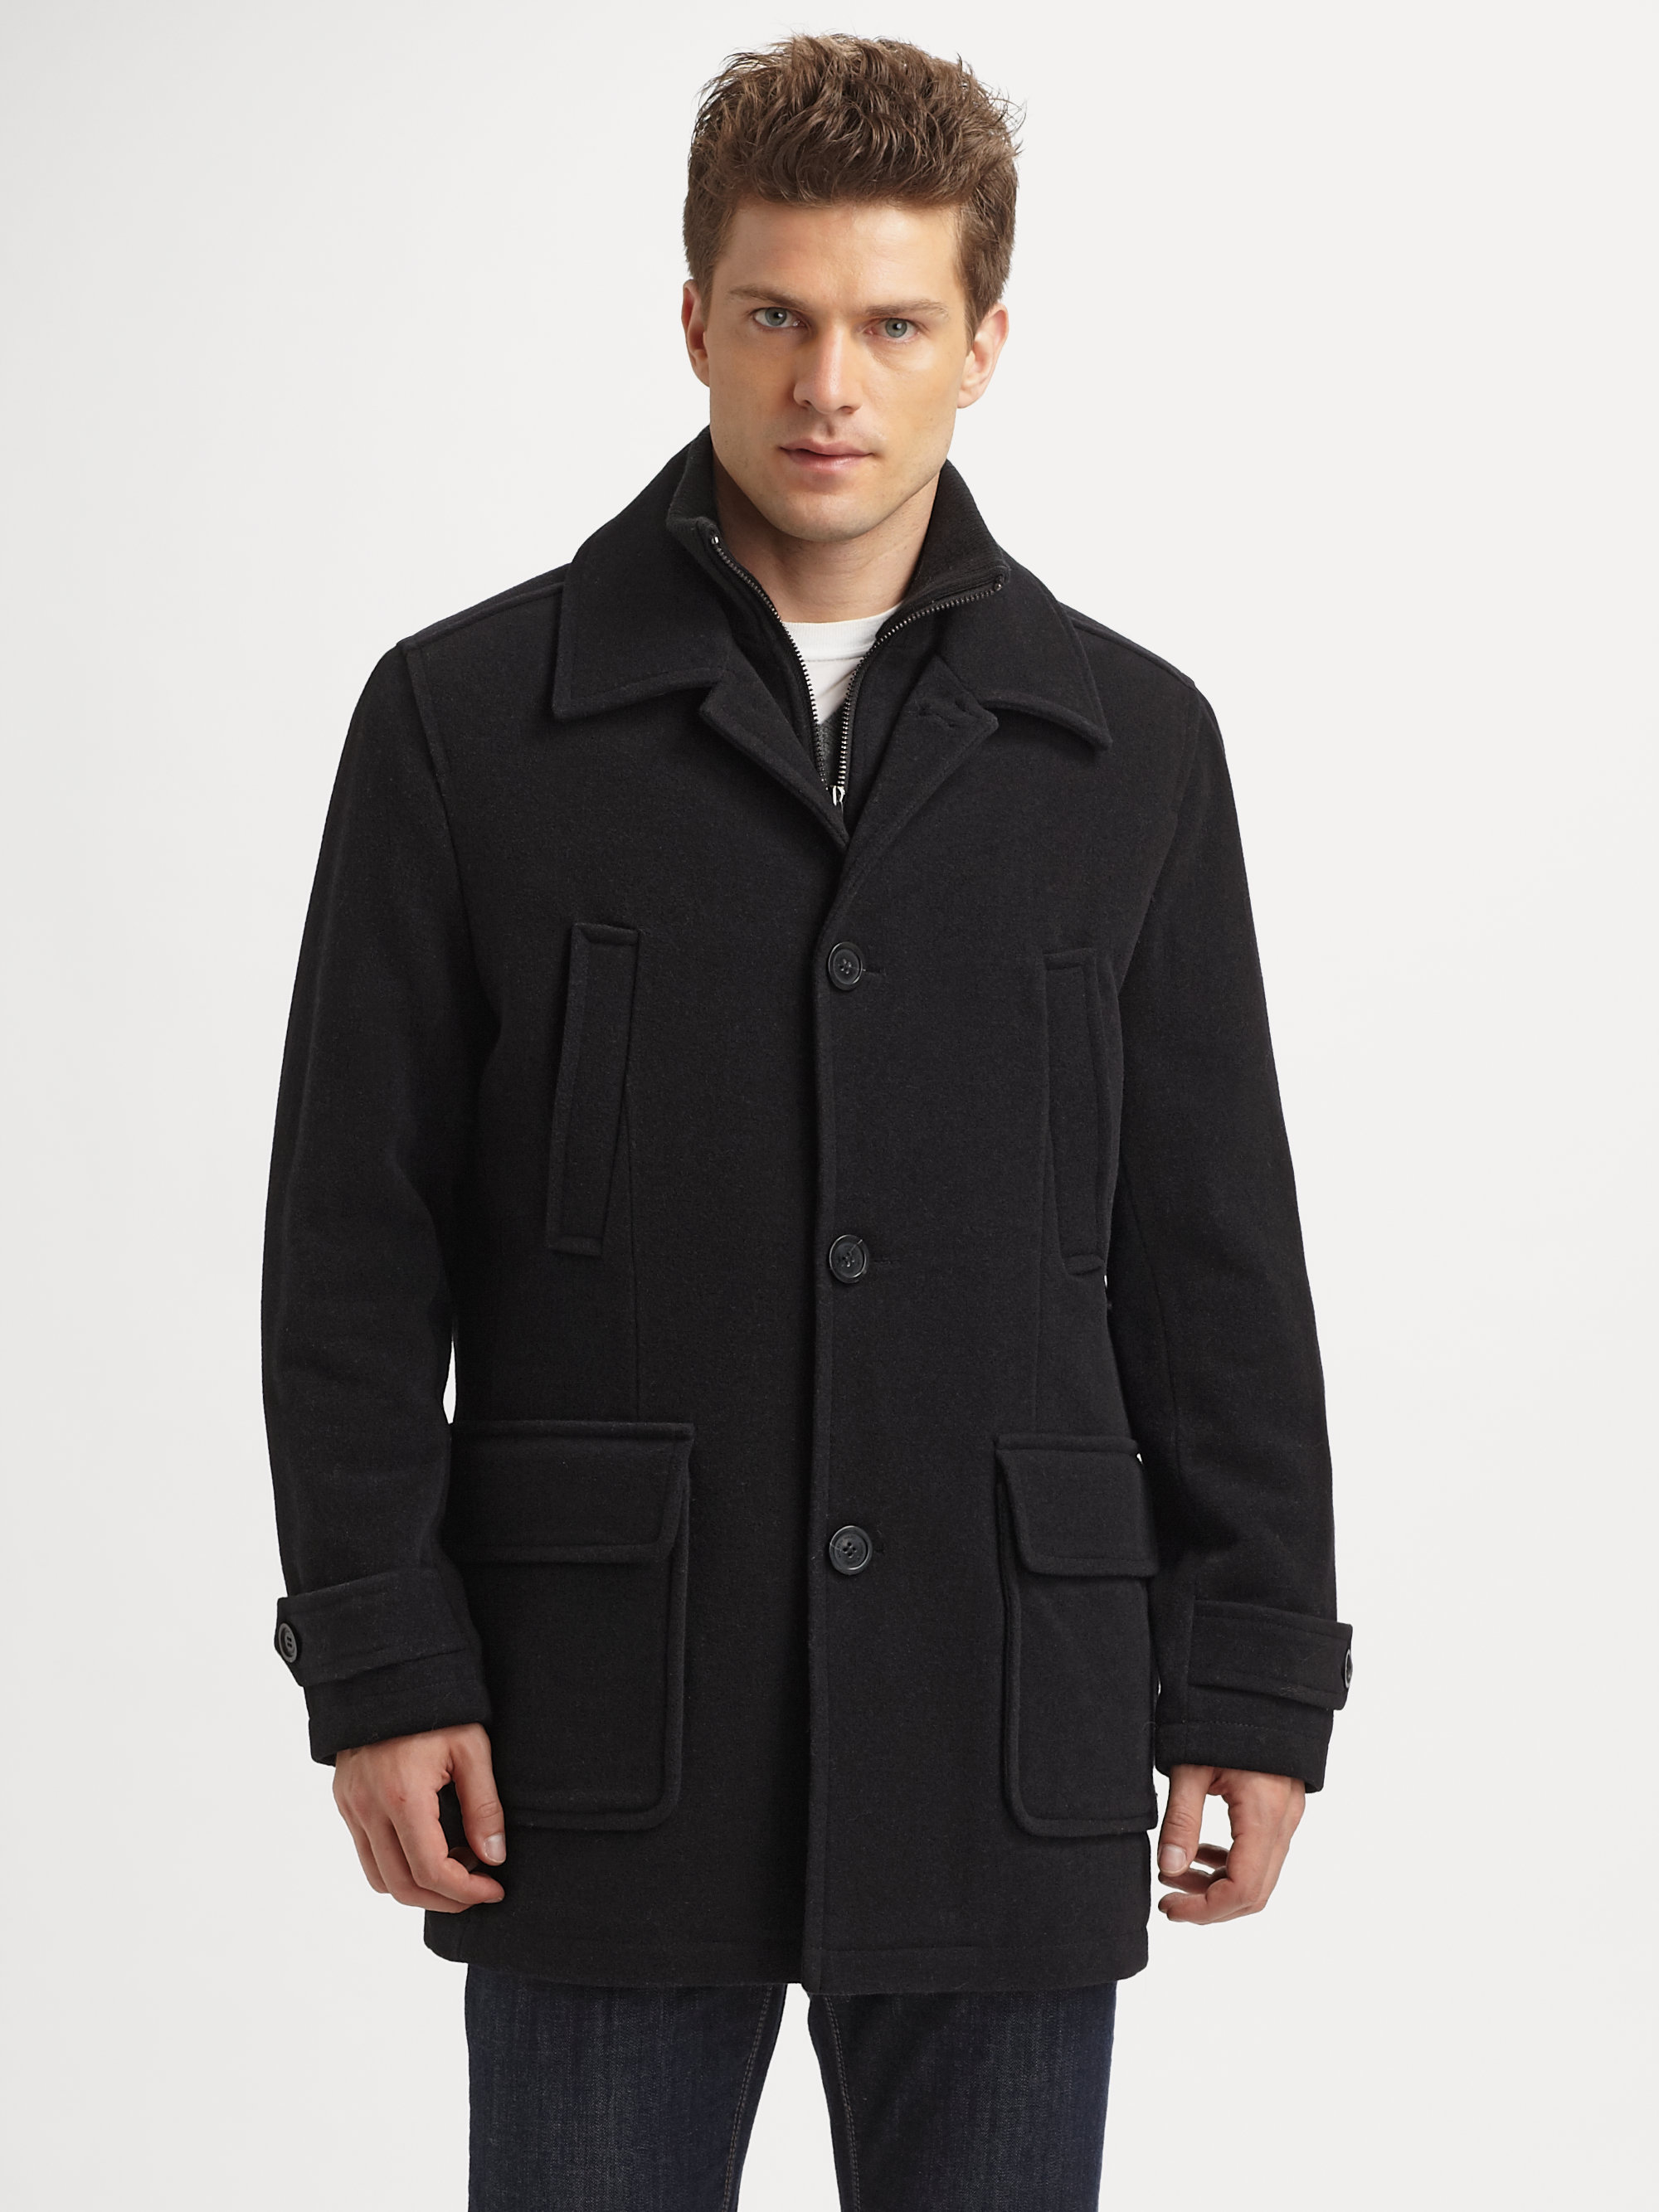 Andrew marc Wool Walking Coat in Black for Men | Lyst